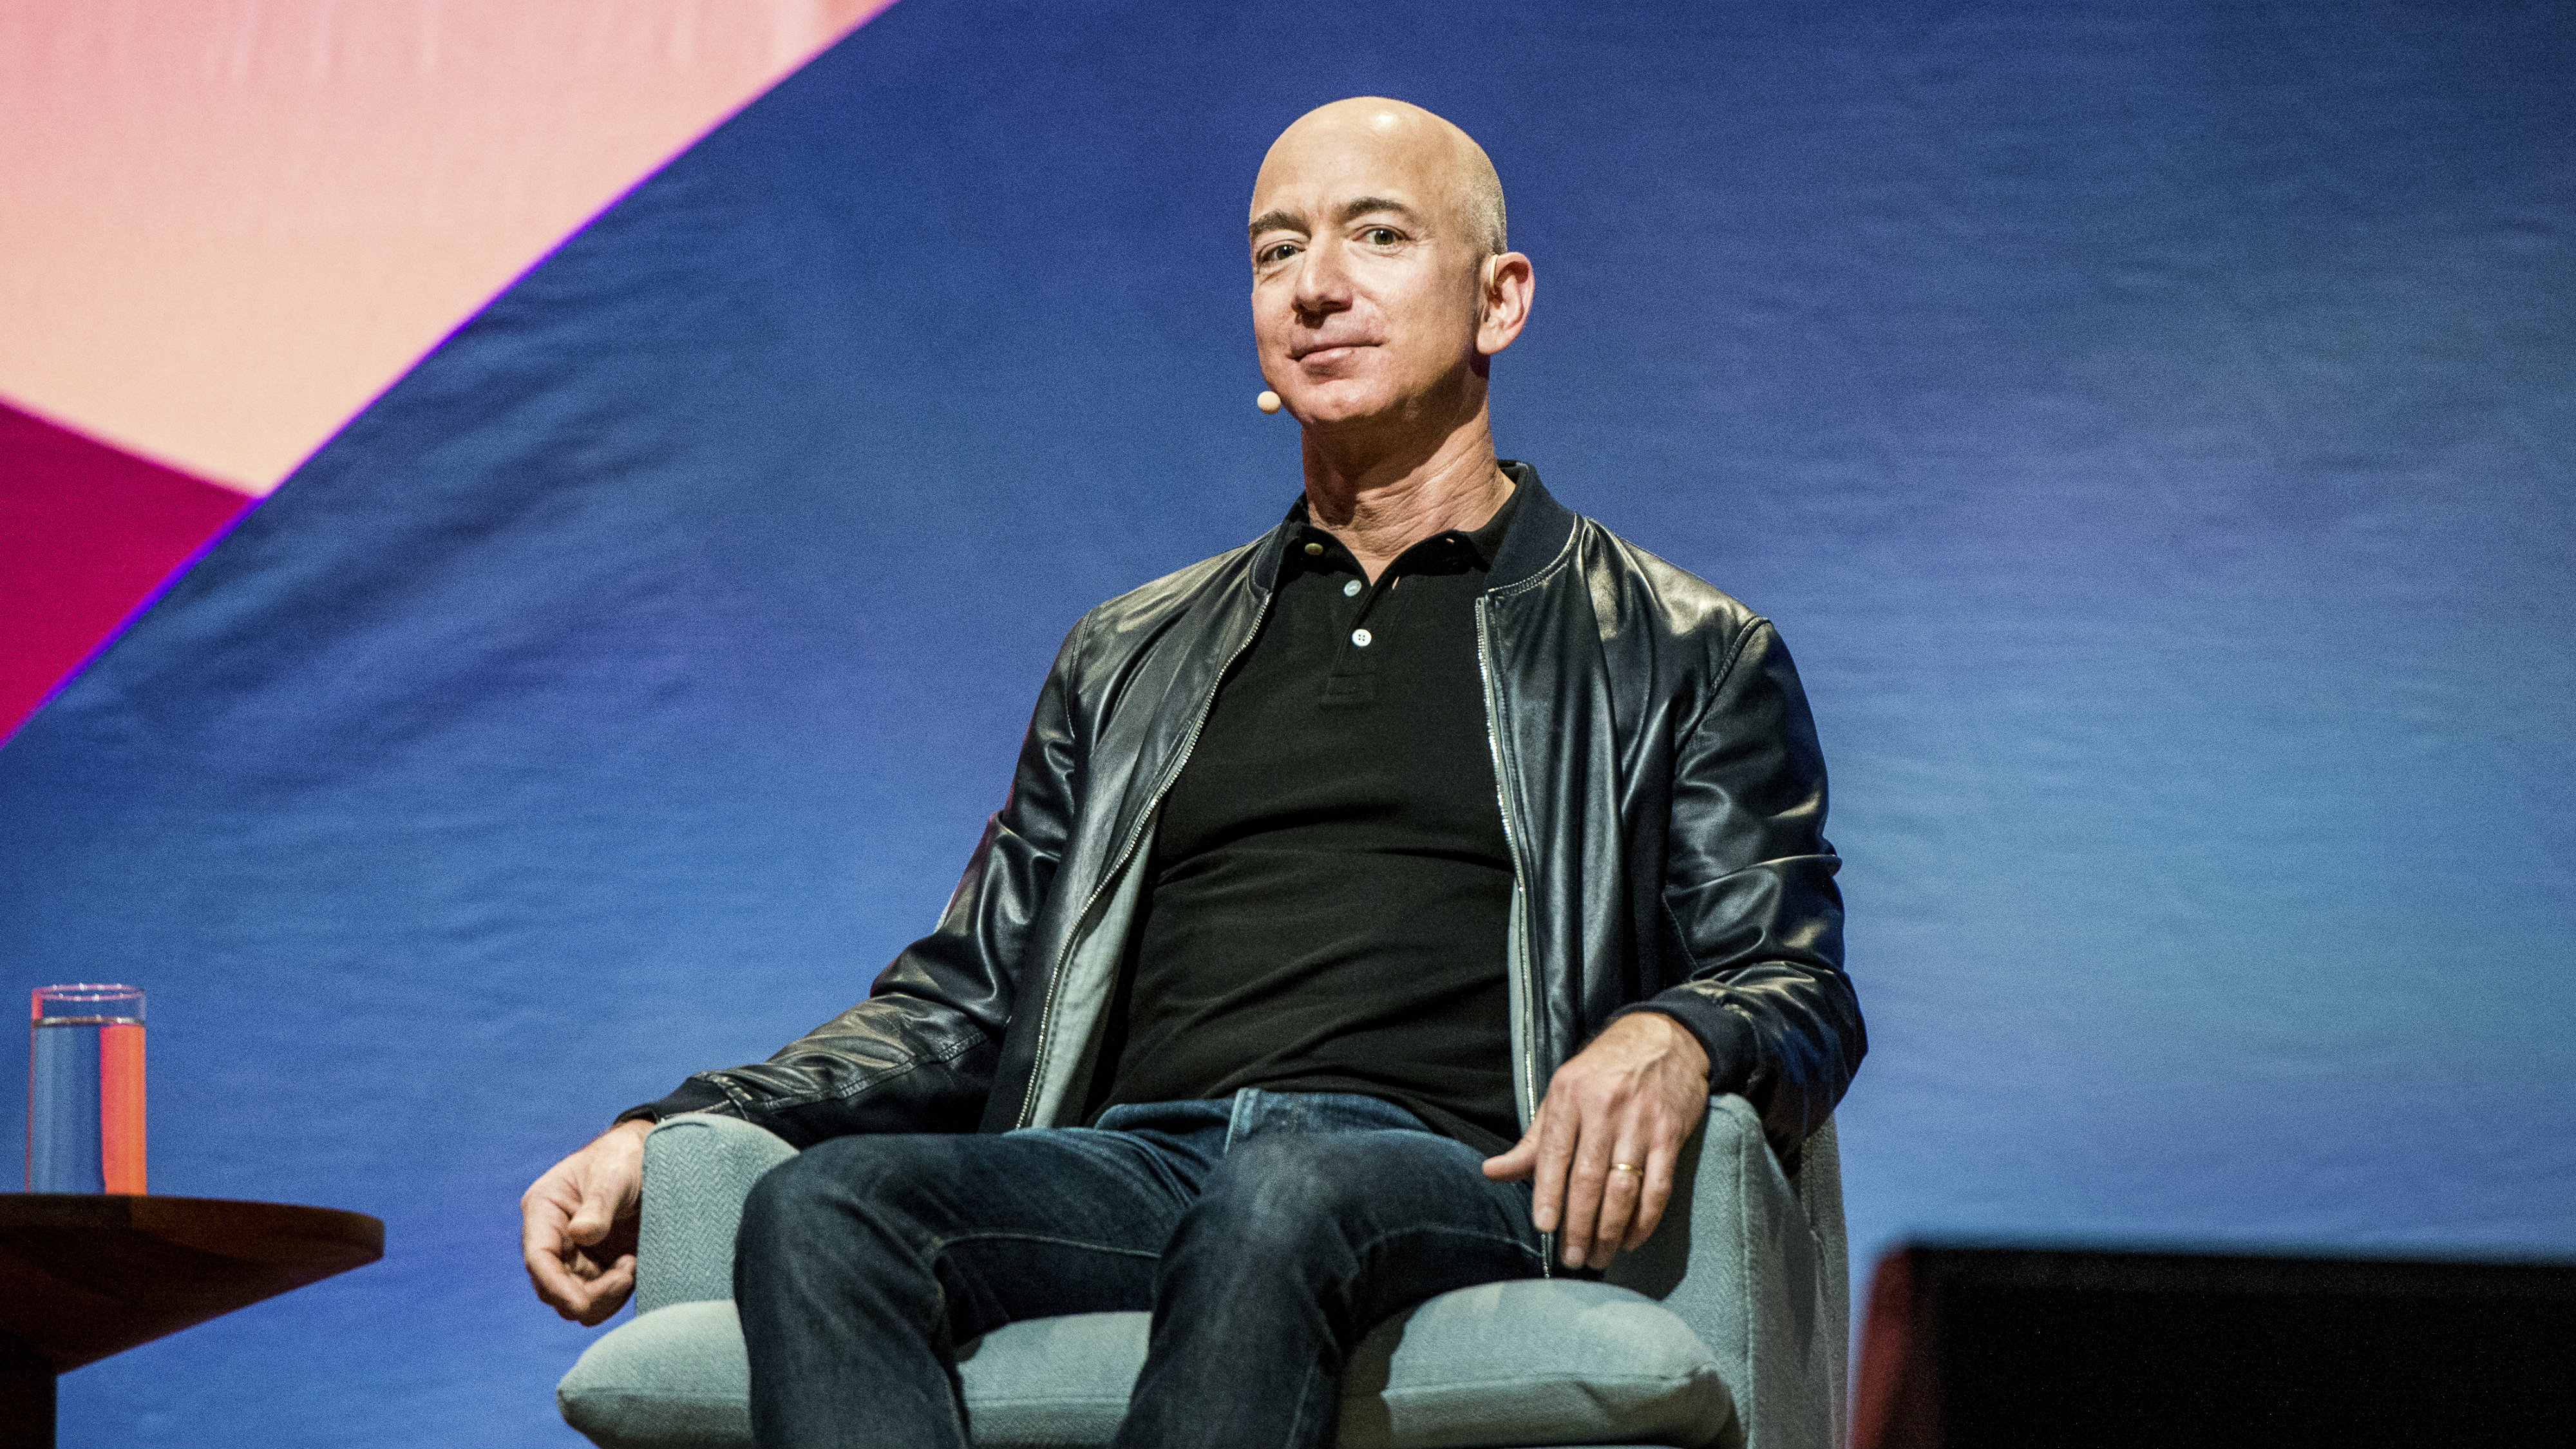 Jeff Bezos Is Now Worth 150 Billion As Much As Many Entire Stock Markets Quartz